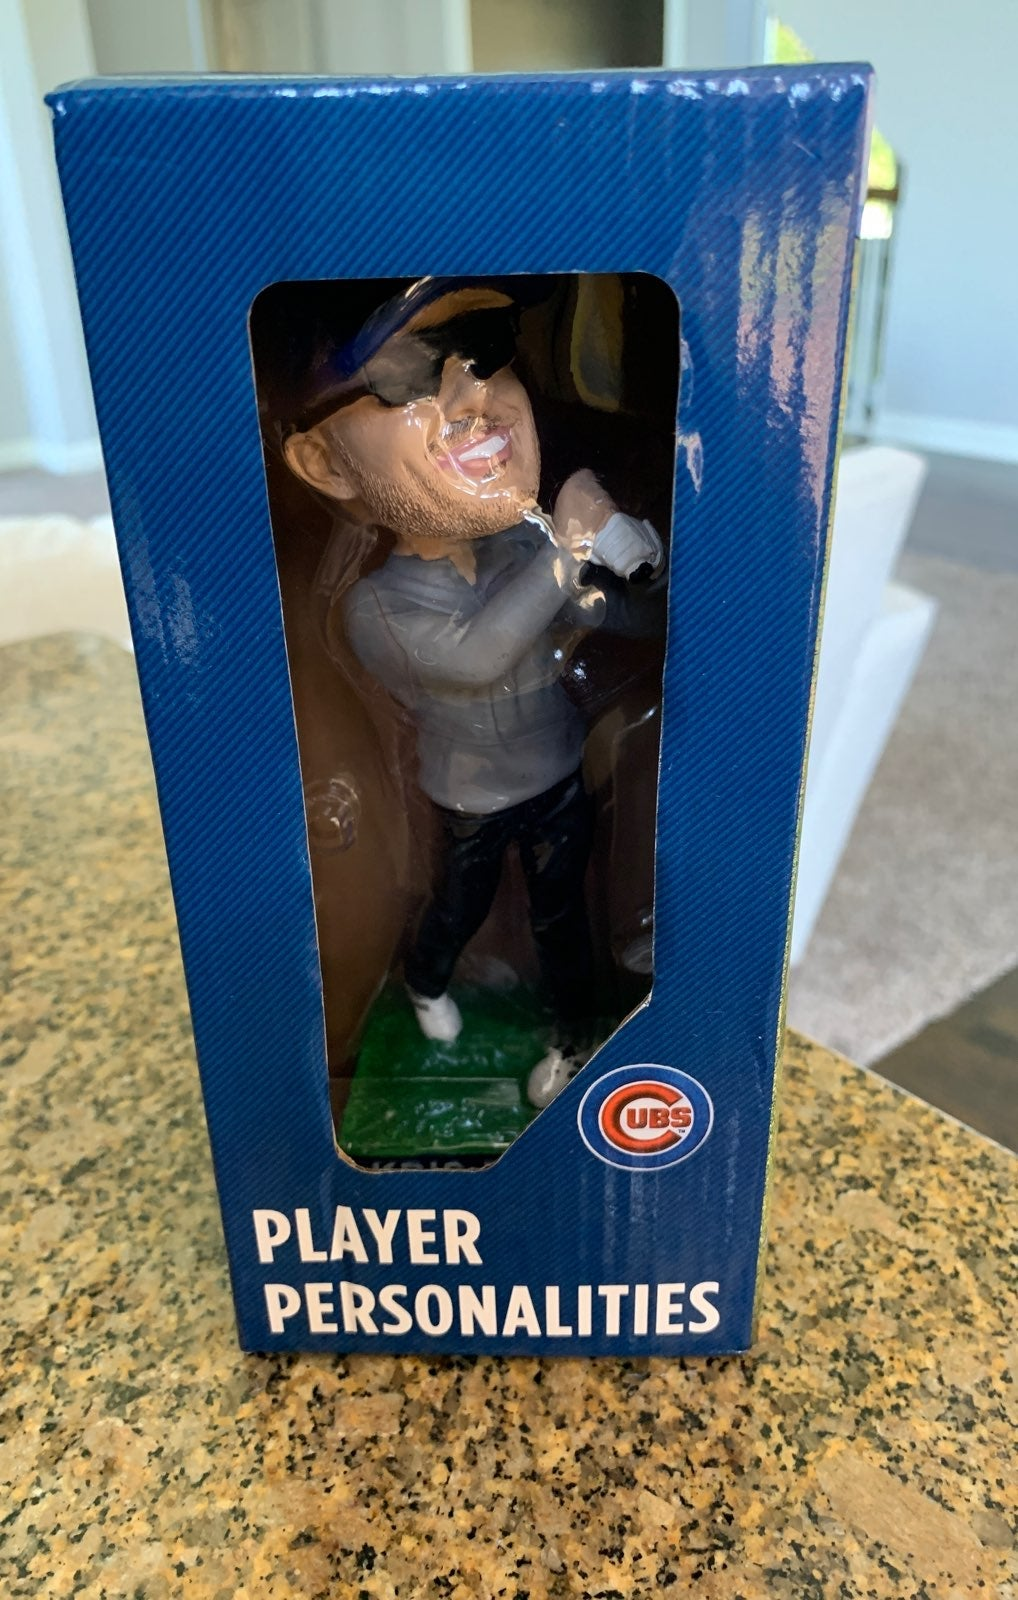 Cubs player personalities collectable